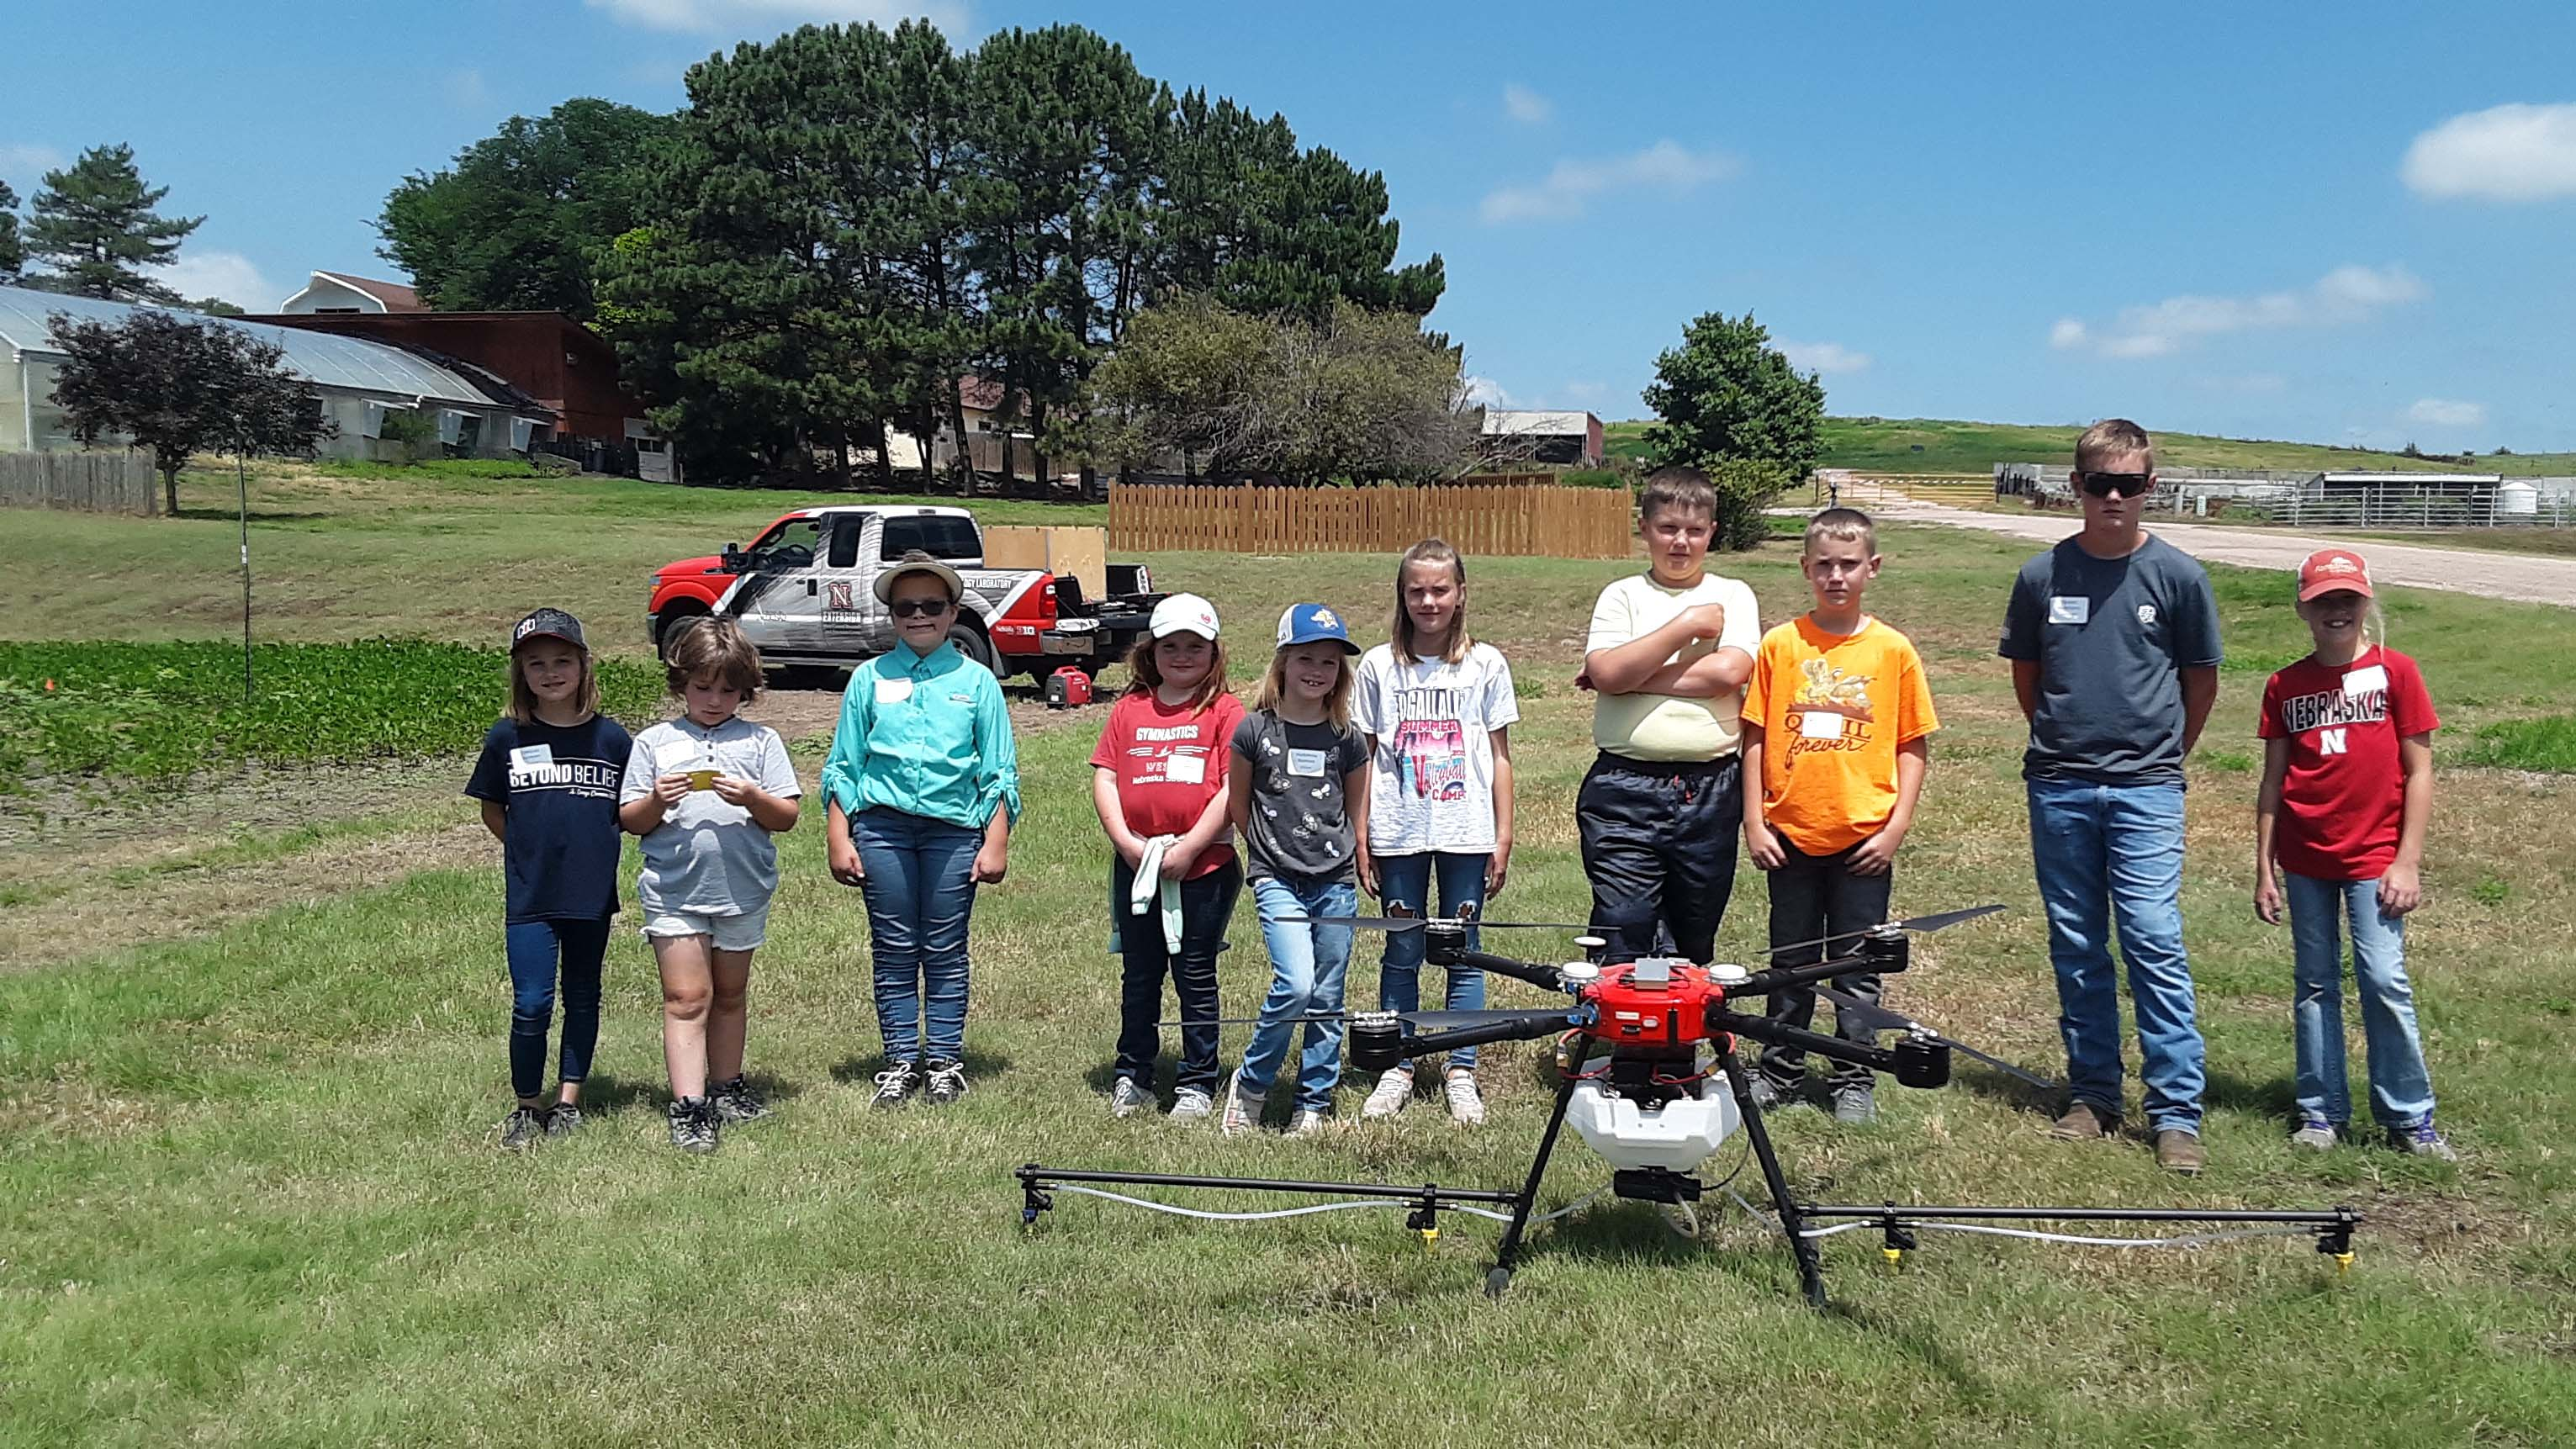 Youngsters ages 9 to 11 years learned how a drone can apply pesticides to crops at the 2021 Agronomy Youth Field Day at NCTA. (Photo by B. Ramsdale / NCTA)